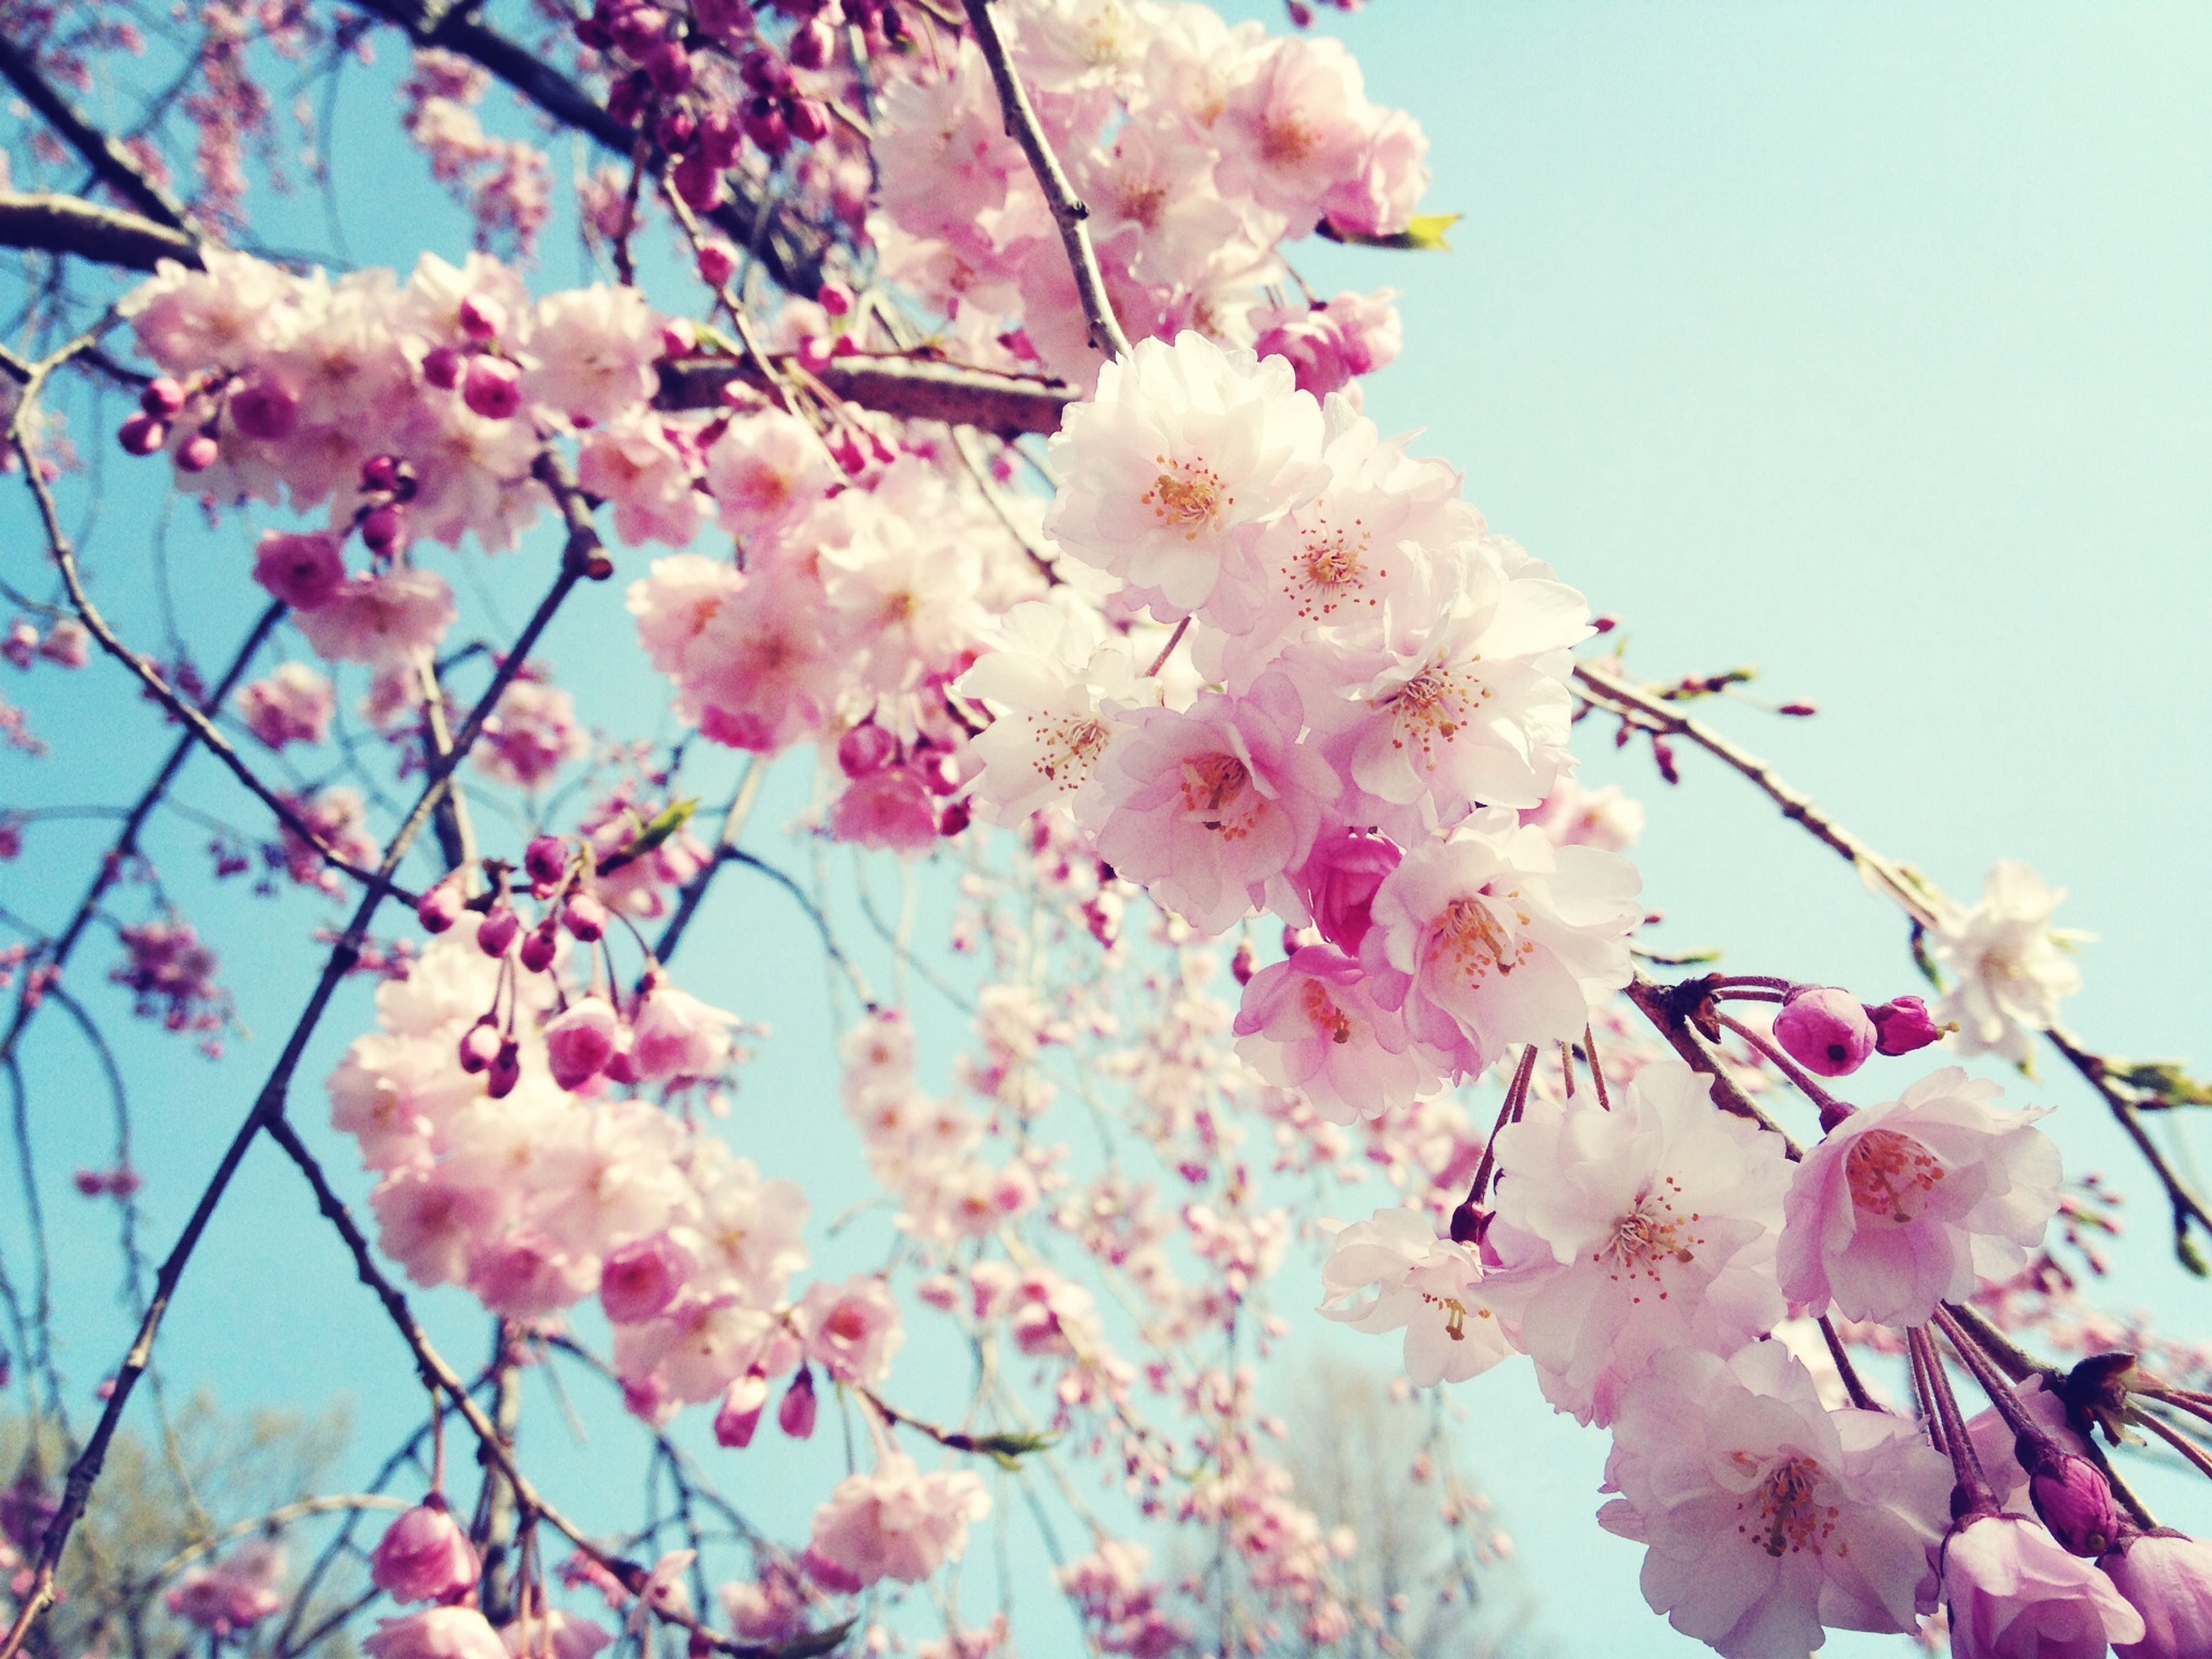 flower, freshness, pink color, branch, fragility, tree, cherry blossom, low angle view, growth, cherry tree, beauty in nature, blossom, nature, petal, blooming, in bloom, springtime, pink, sky, fruit tree